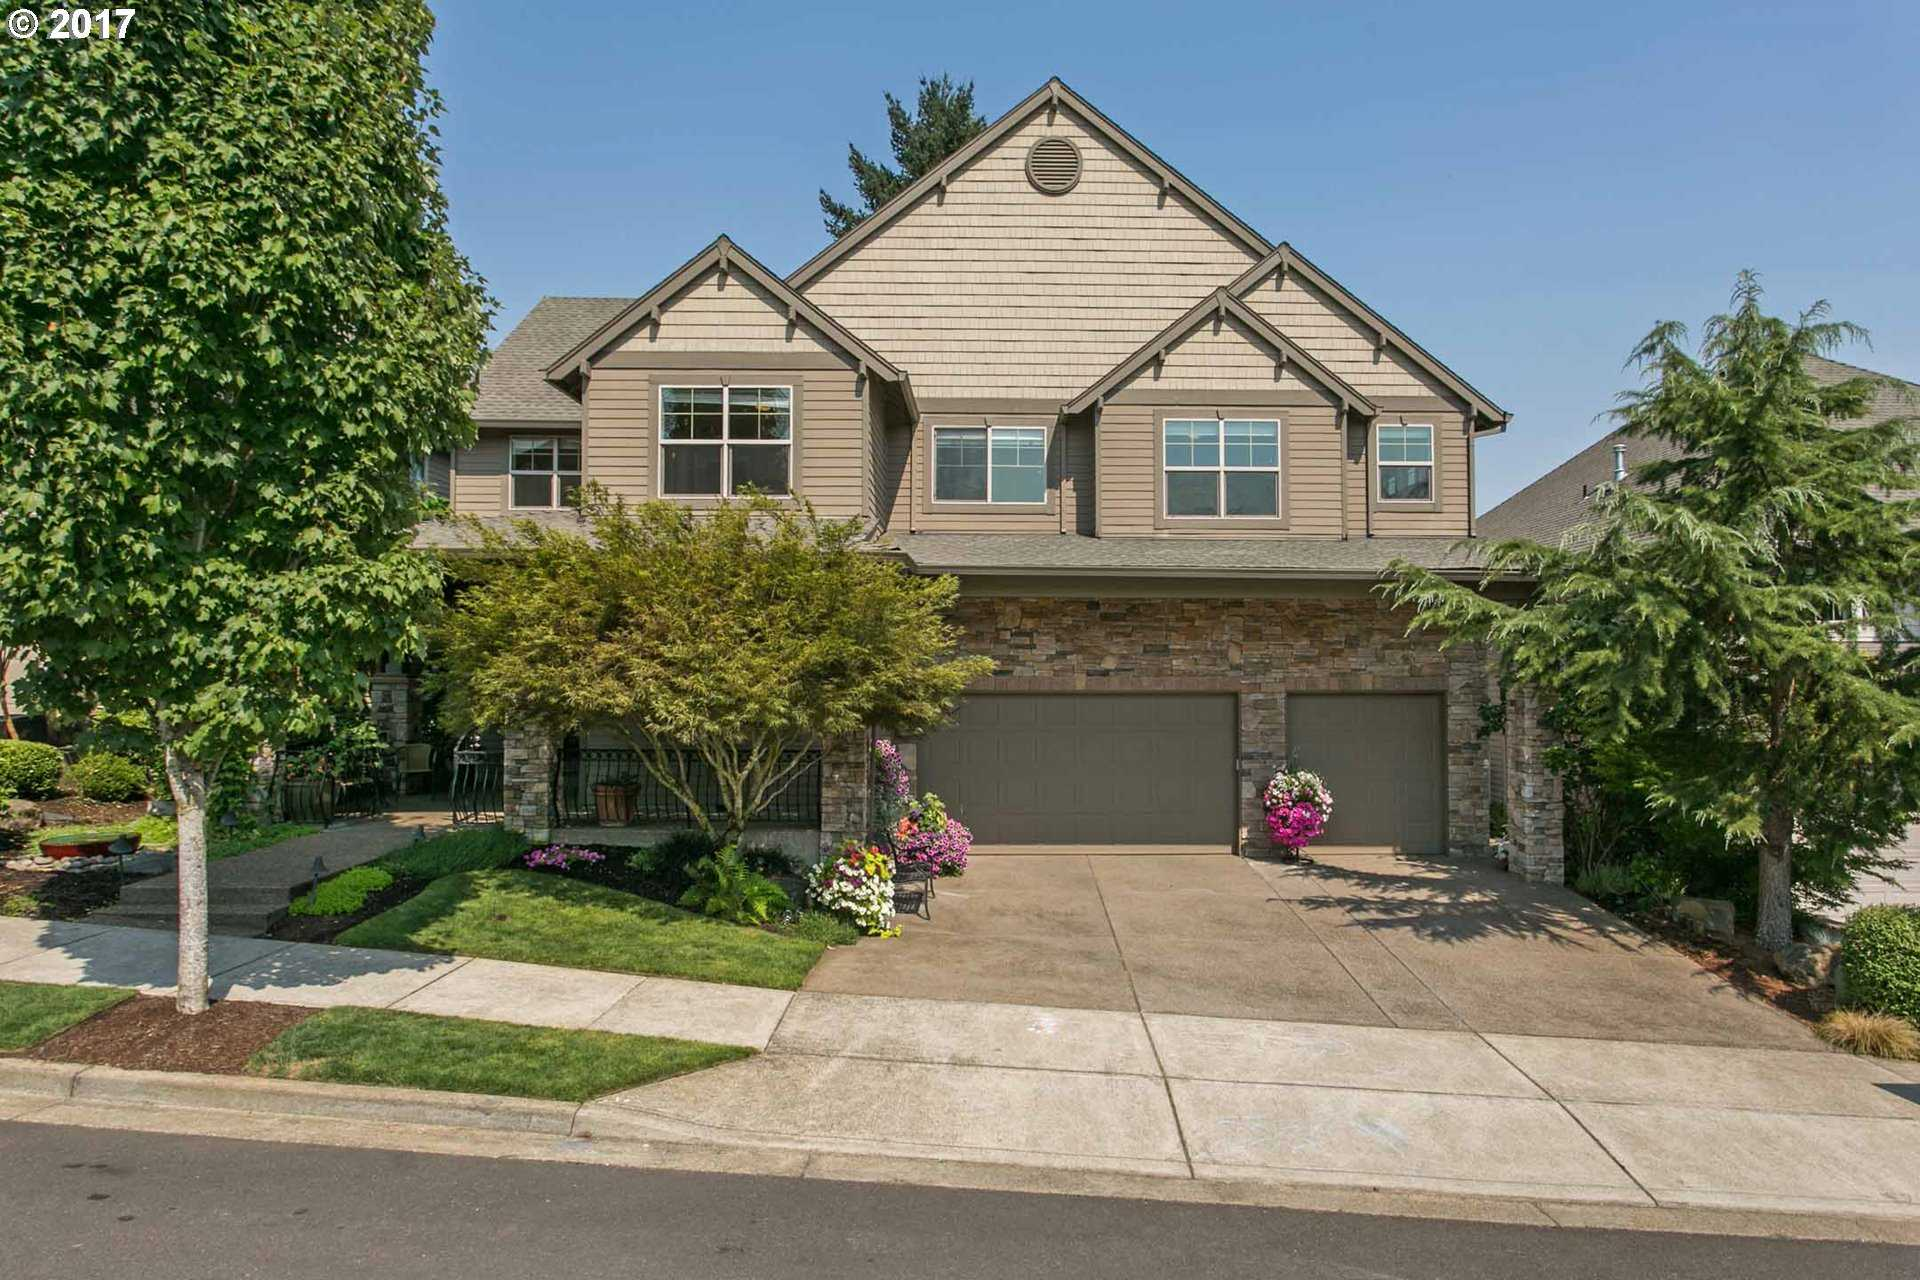 $706,000 - 4Br/4Ba -  for Sale in Graham's Crossing, Tualatin